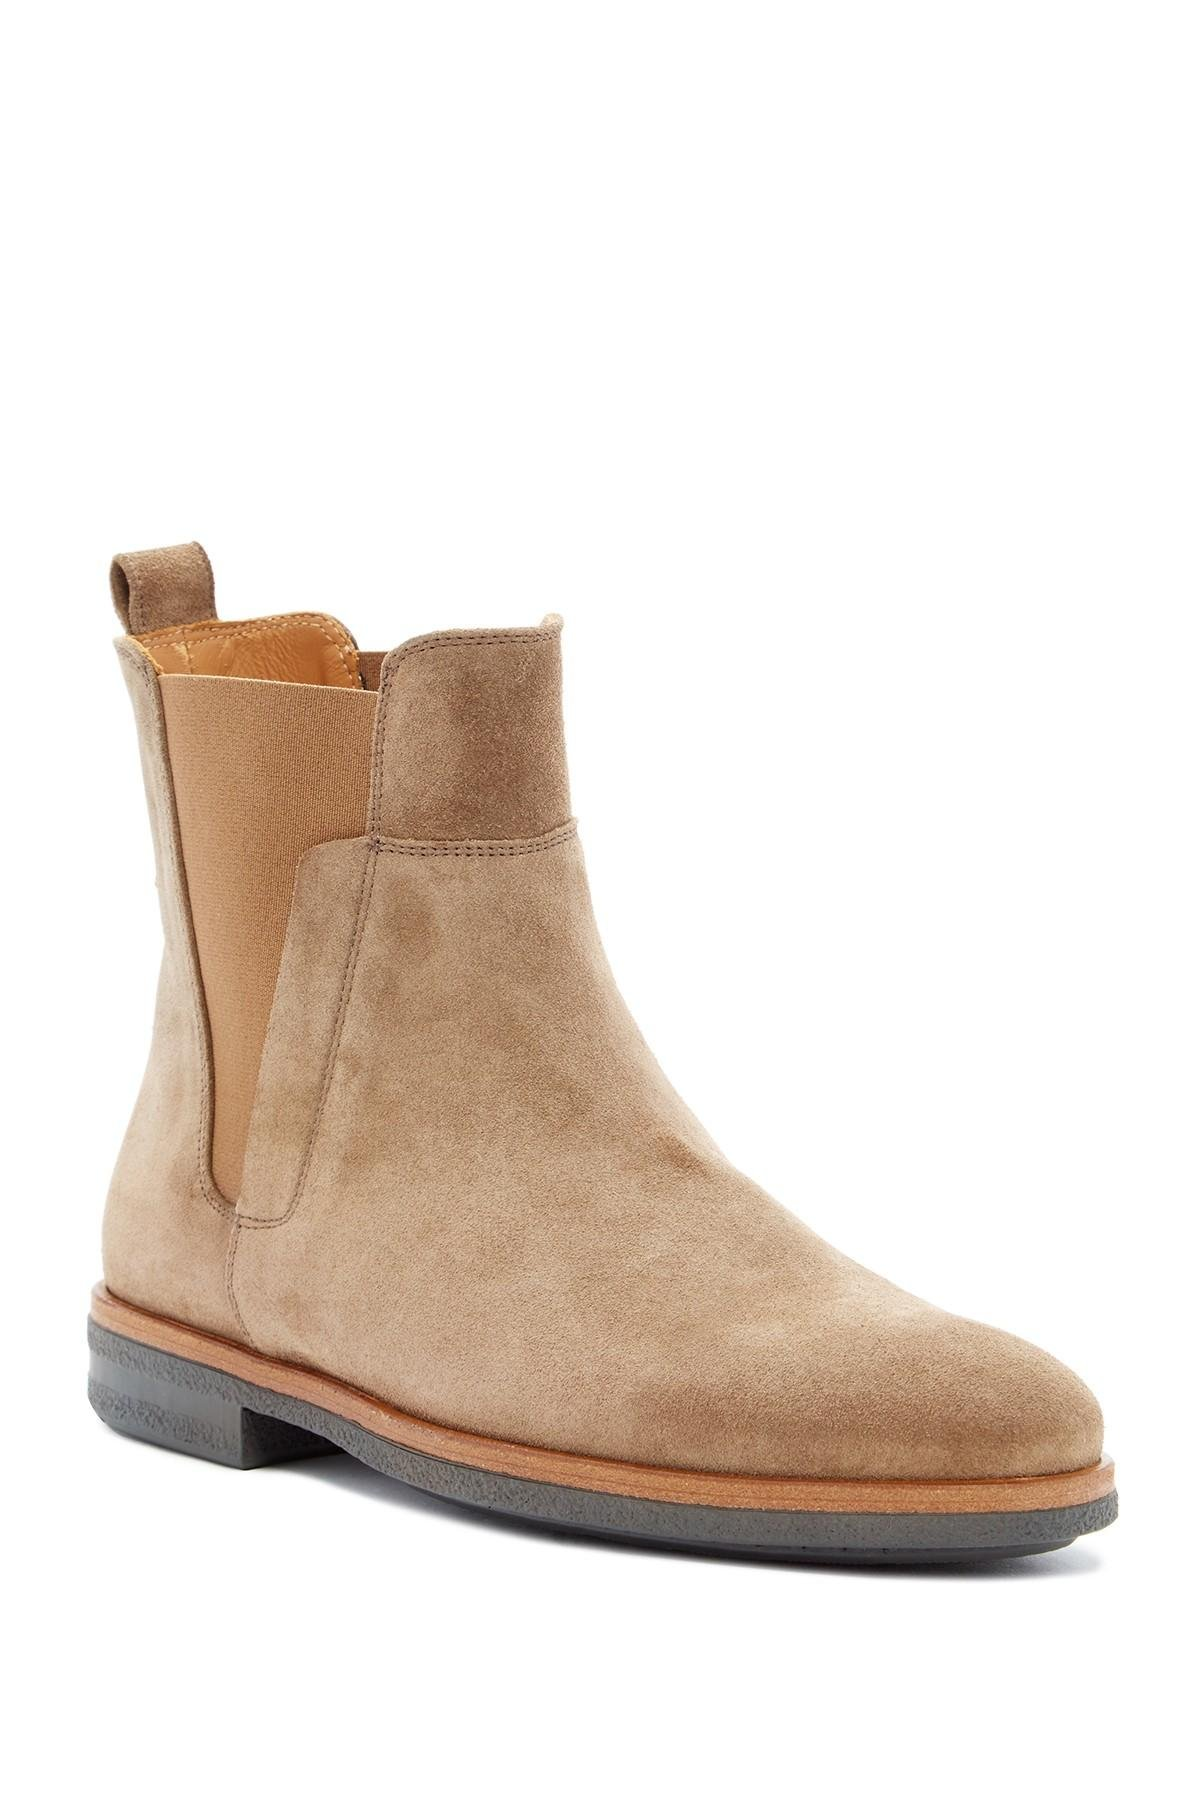 Vince Harvey Chelsea Boot In Brown For Men Lyst